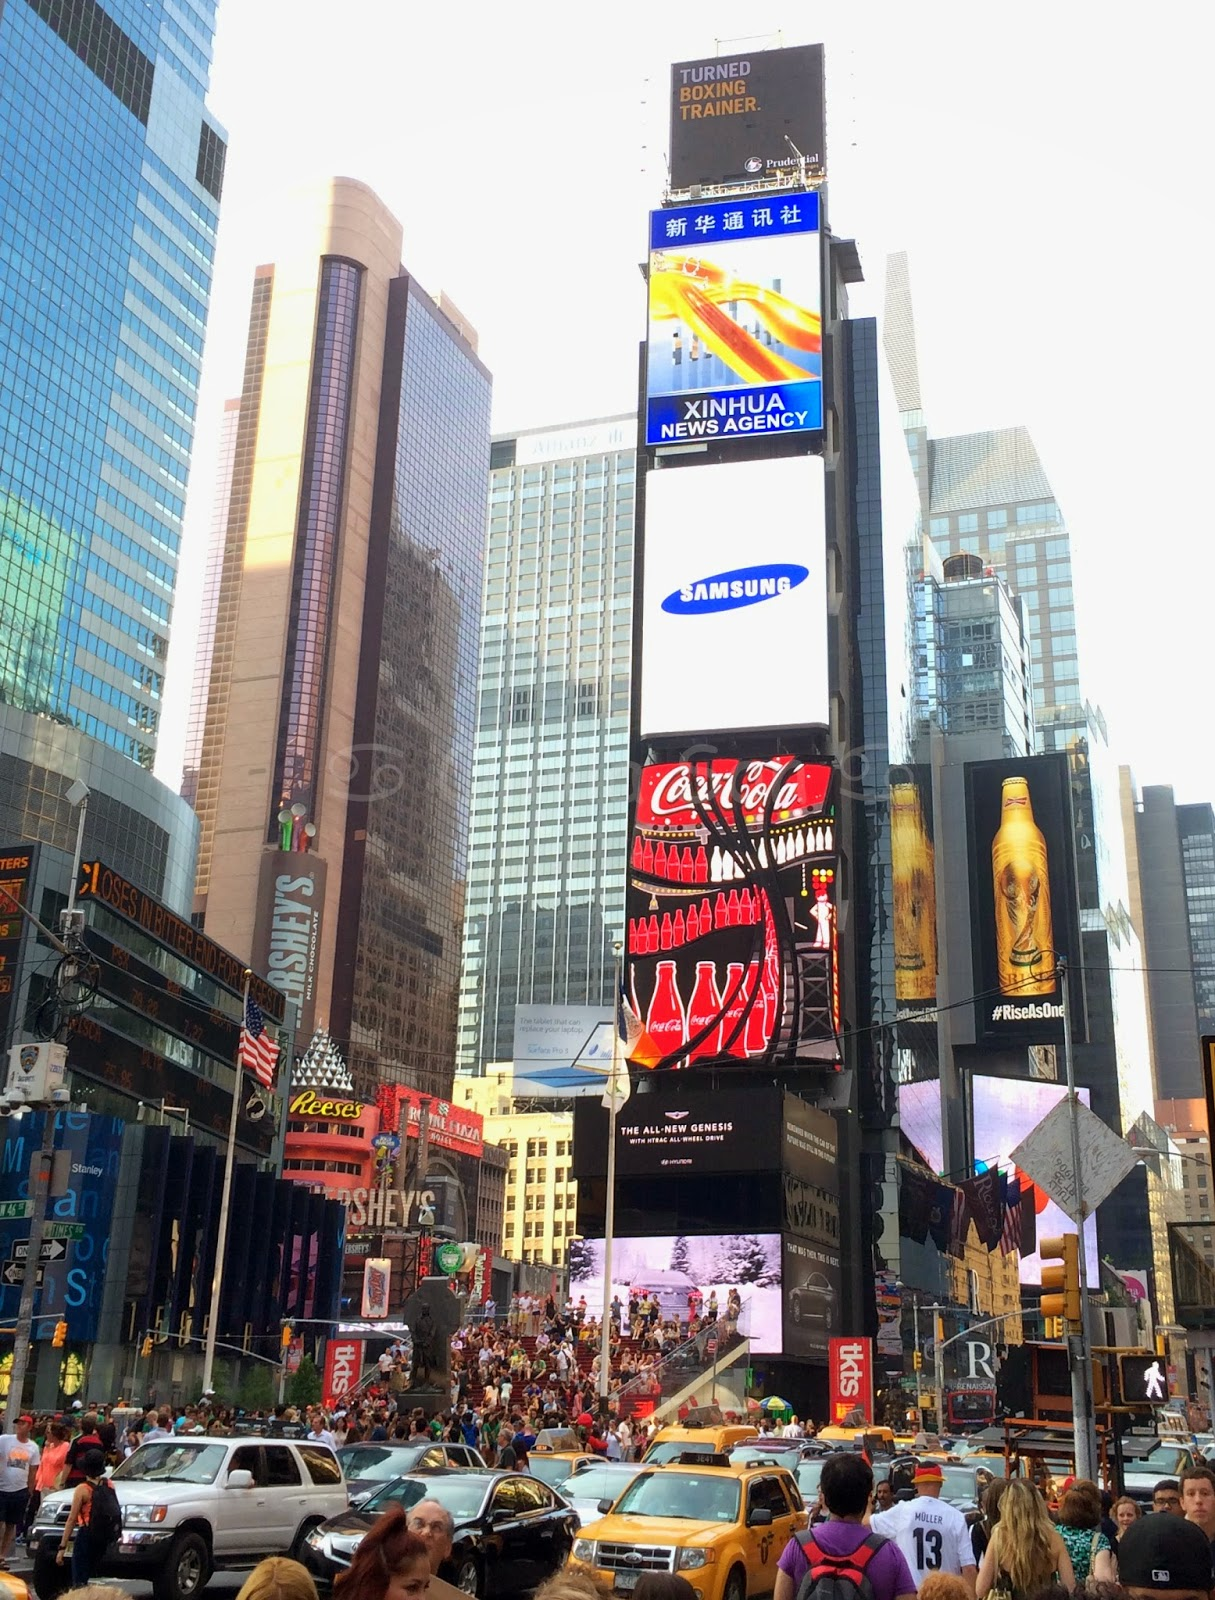 times square, new york city, usa